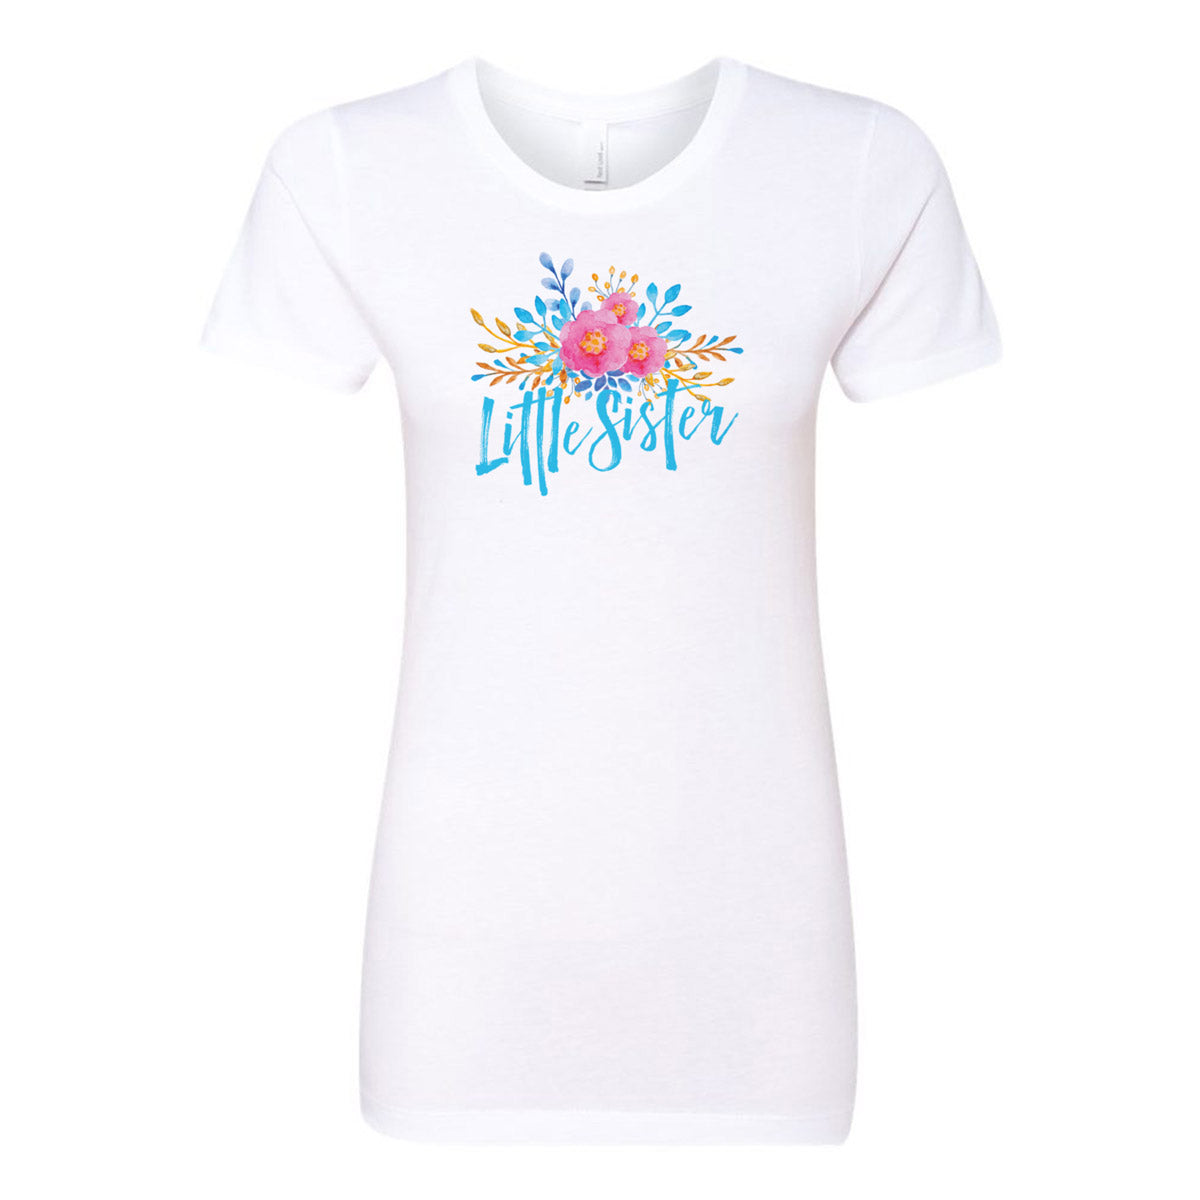 Little Sister - Watercolor Flowers Ladies' Boyfriend T-Shirt - pipercleo.com